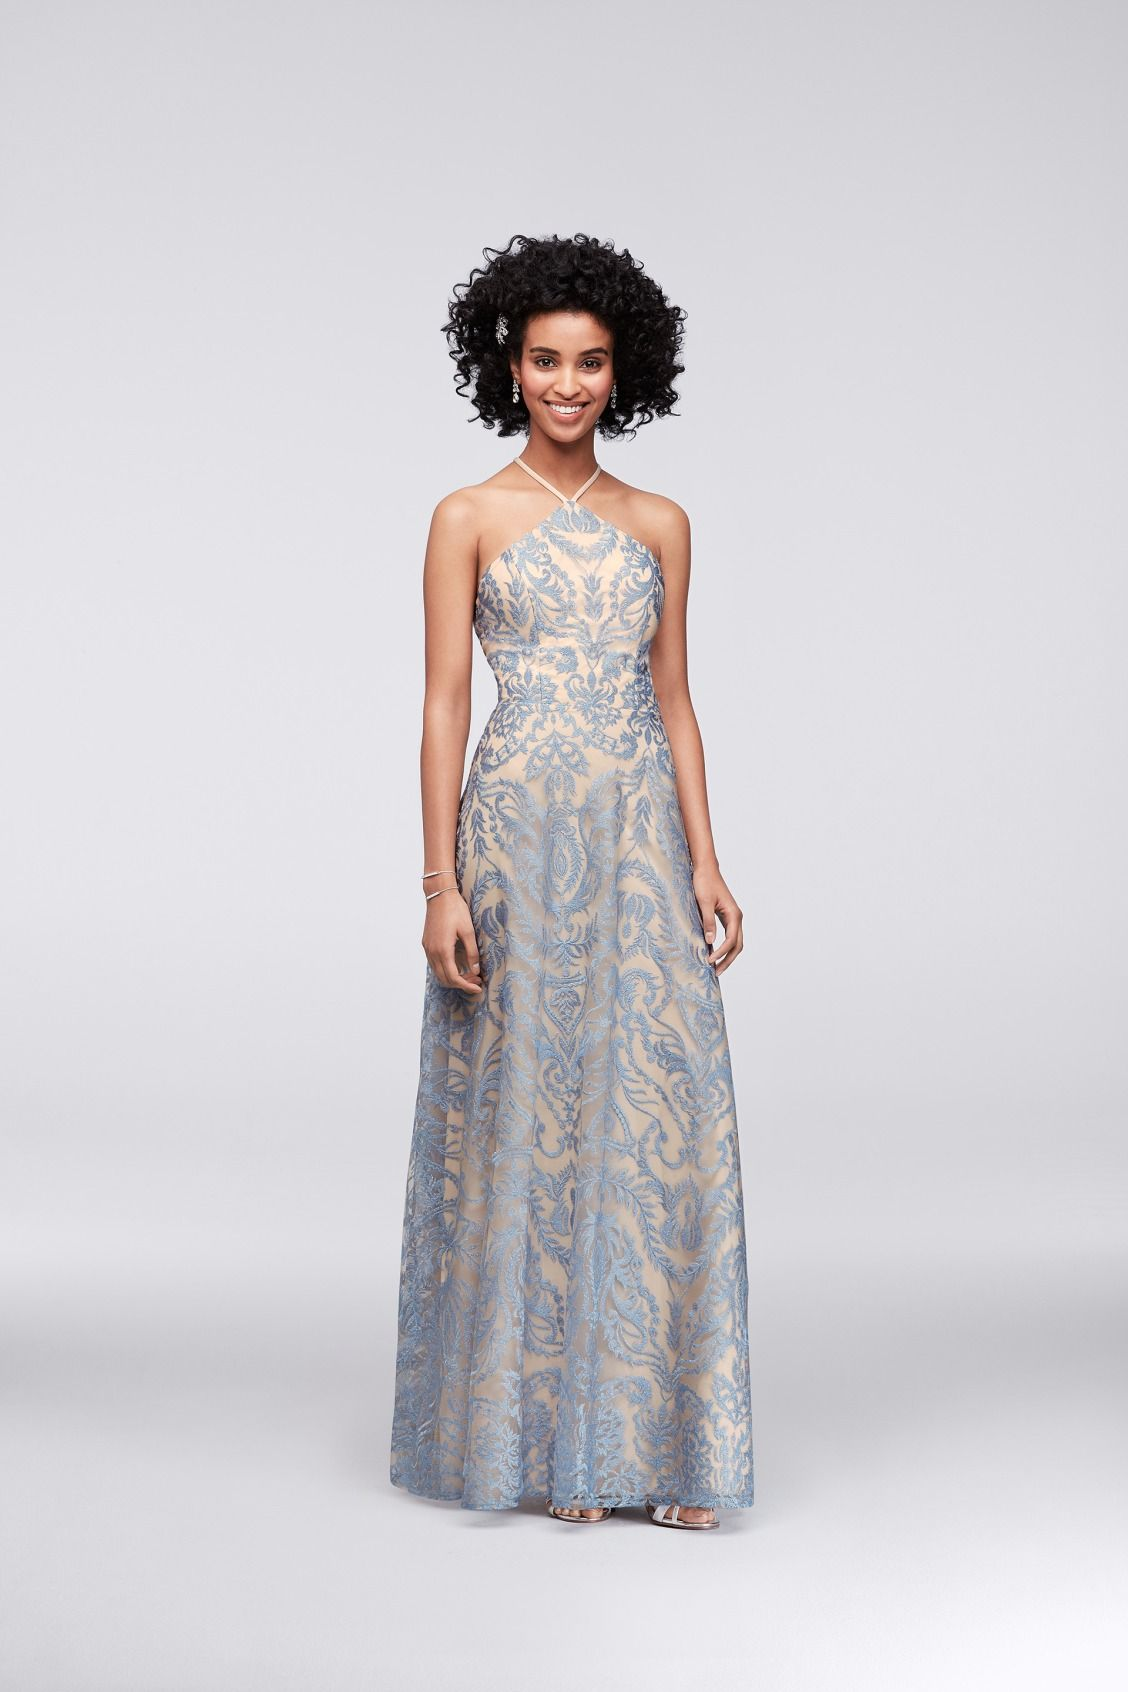 d0f6585775853 Blue Embroidered Illusion Halter with Strappy Back Prom Dress by Speechless  available at David s Bridal